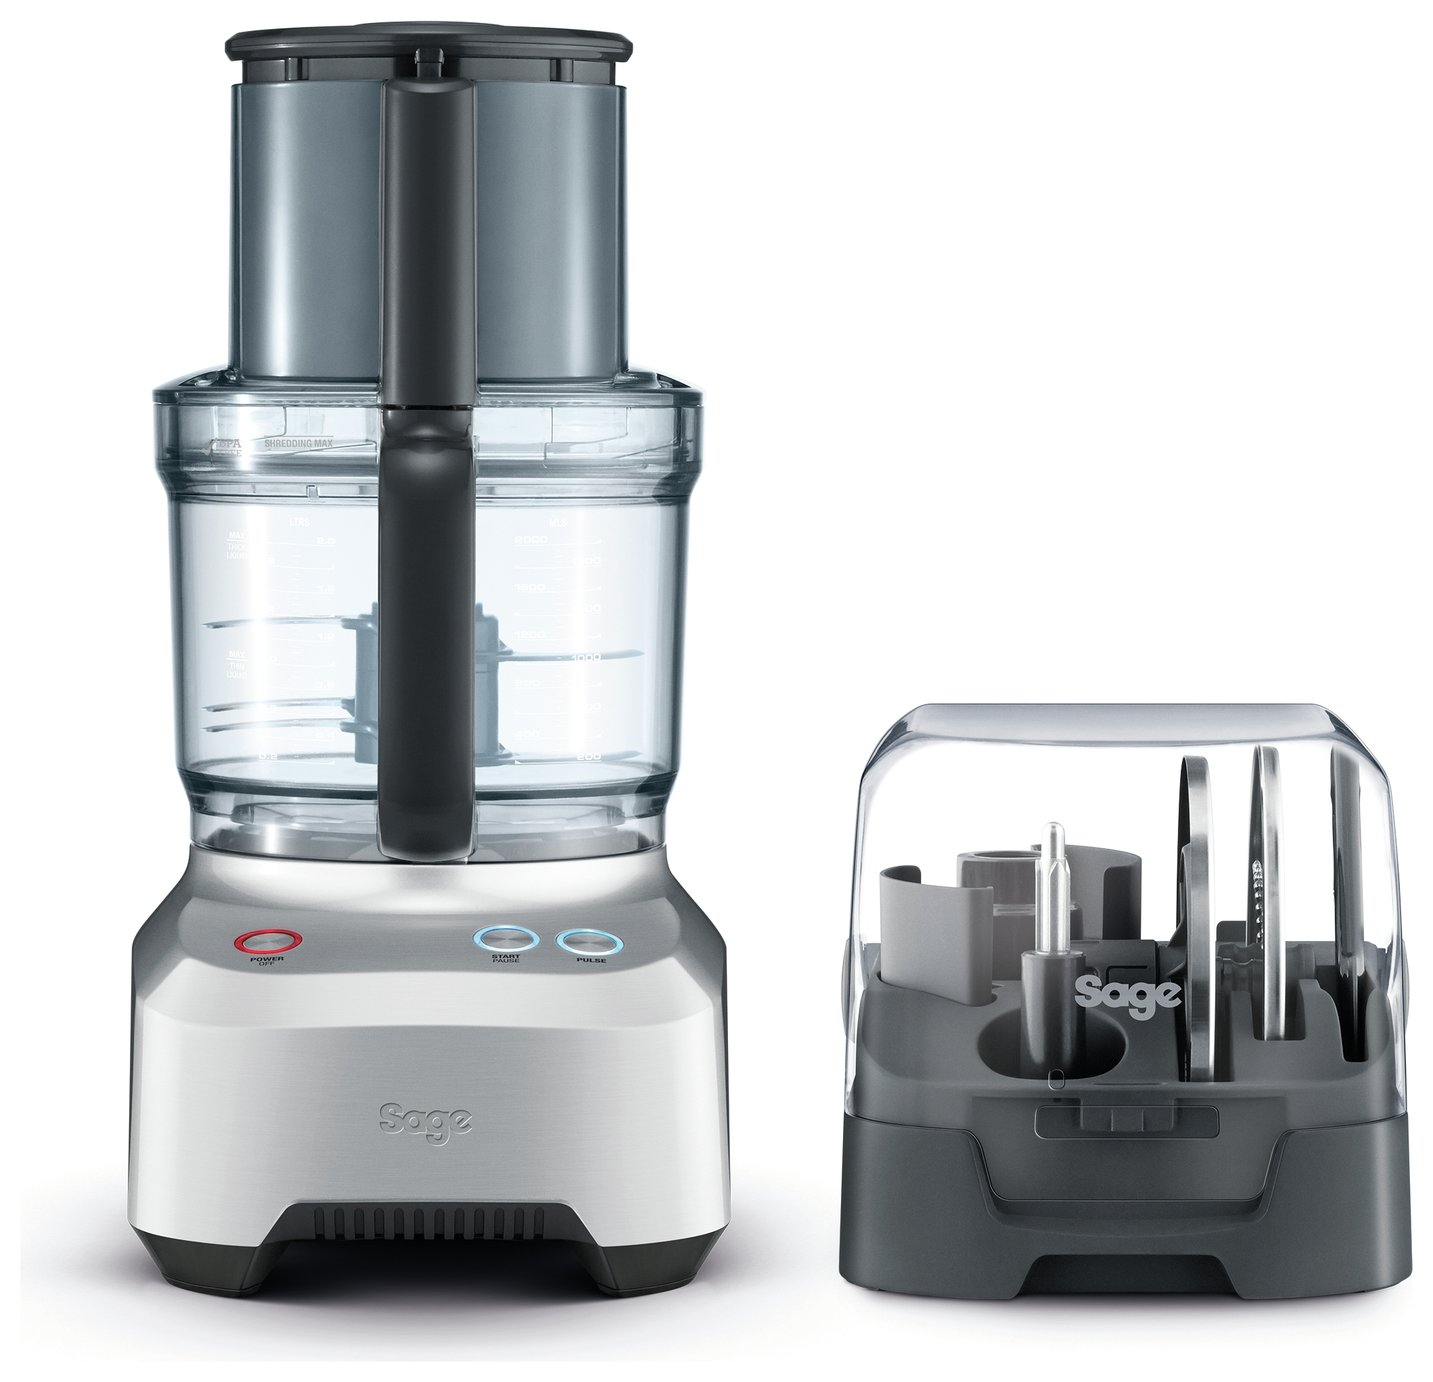 Sage The Kitchen Wizz Pro Food Processor